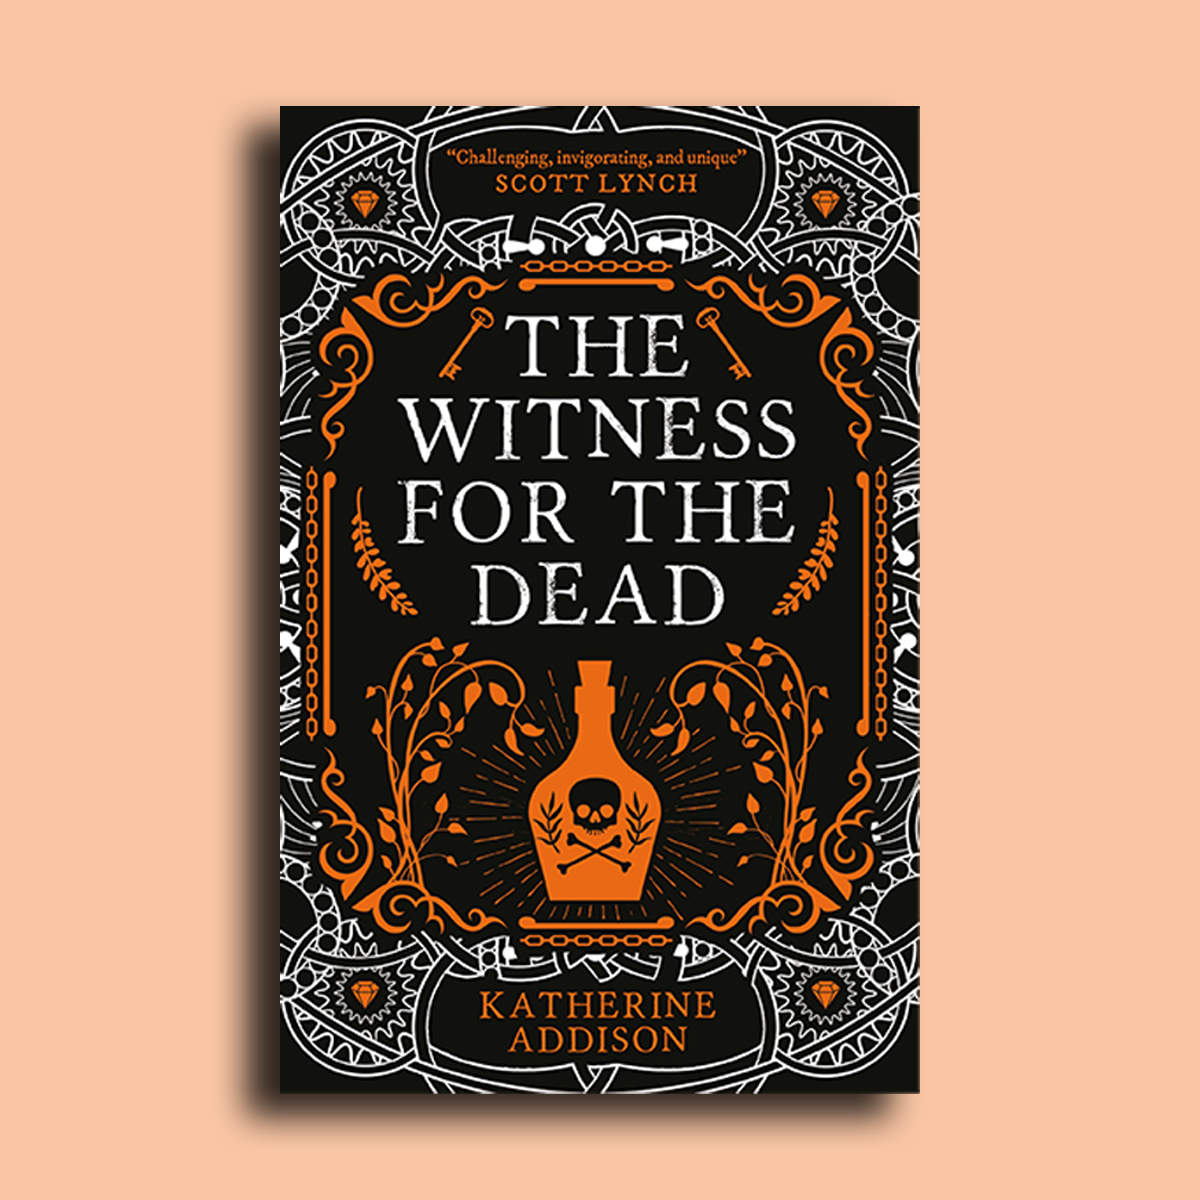 Revealing the cover for The Witness for the Dead by Katherine Addison